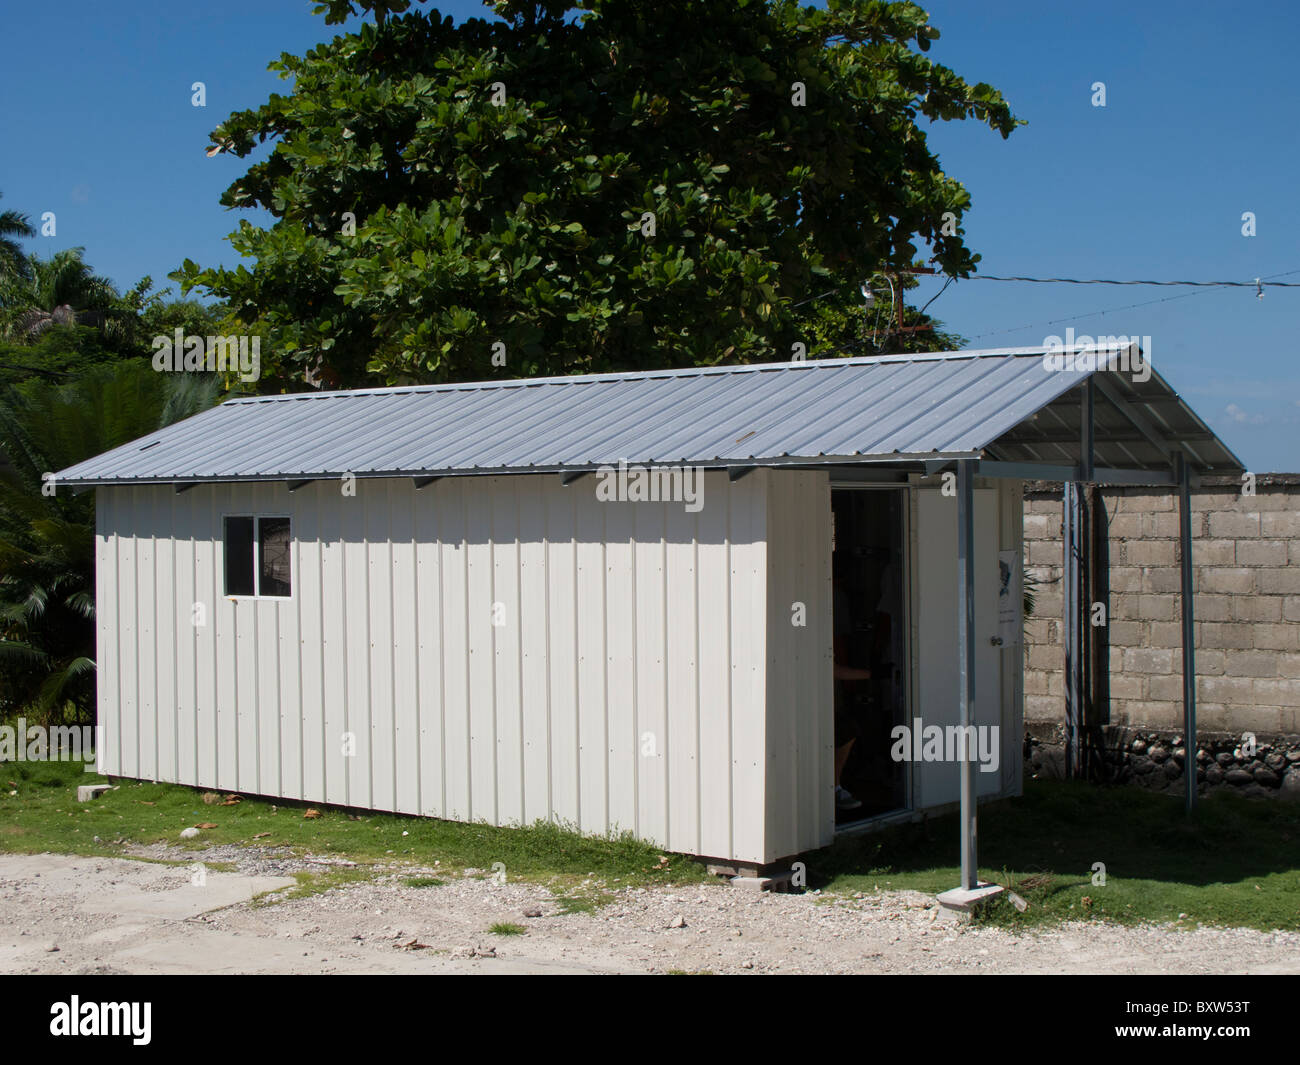 Transitional home designed by Reciprocal Ministries International to provide quake and hurricane safe homes in Haiti. - Stock Image